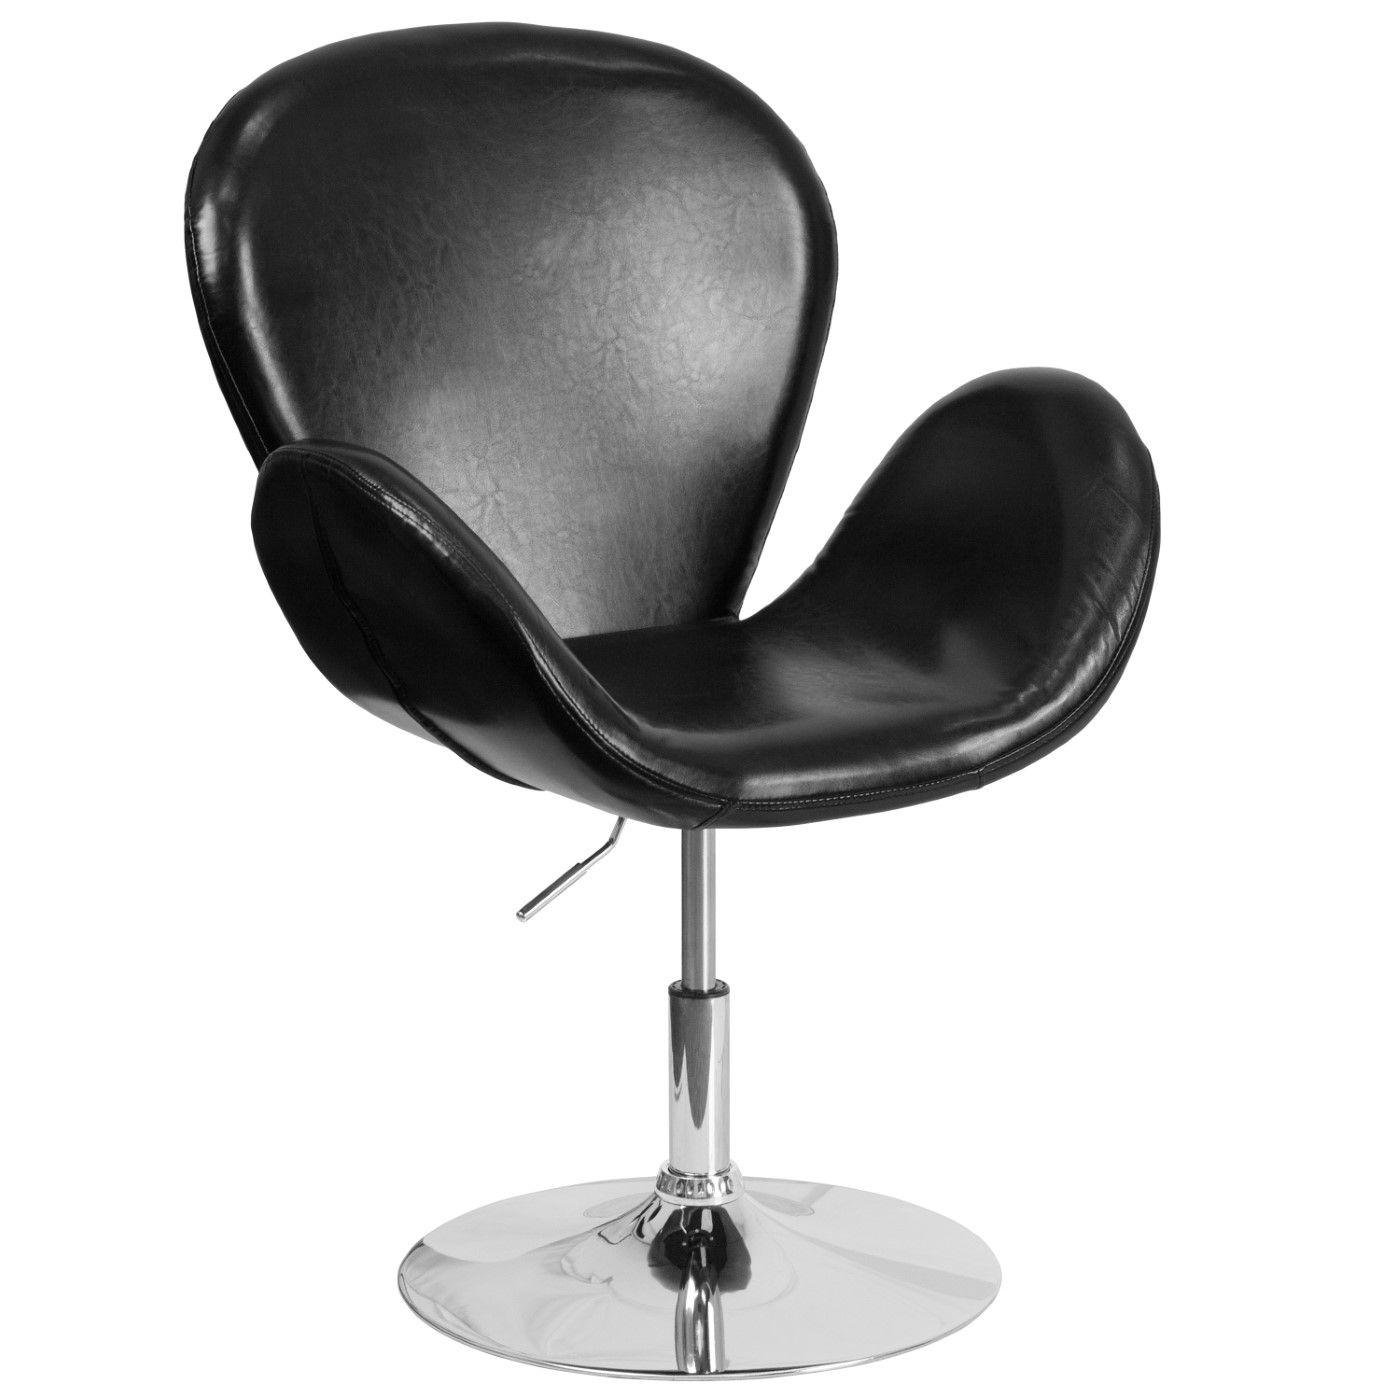 TOUGH ENOUGH Trestron Series Black LeatherSoft Side Reception Chair with Adjustable Height Seat